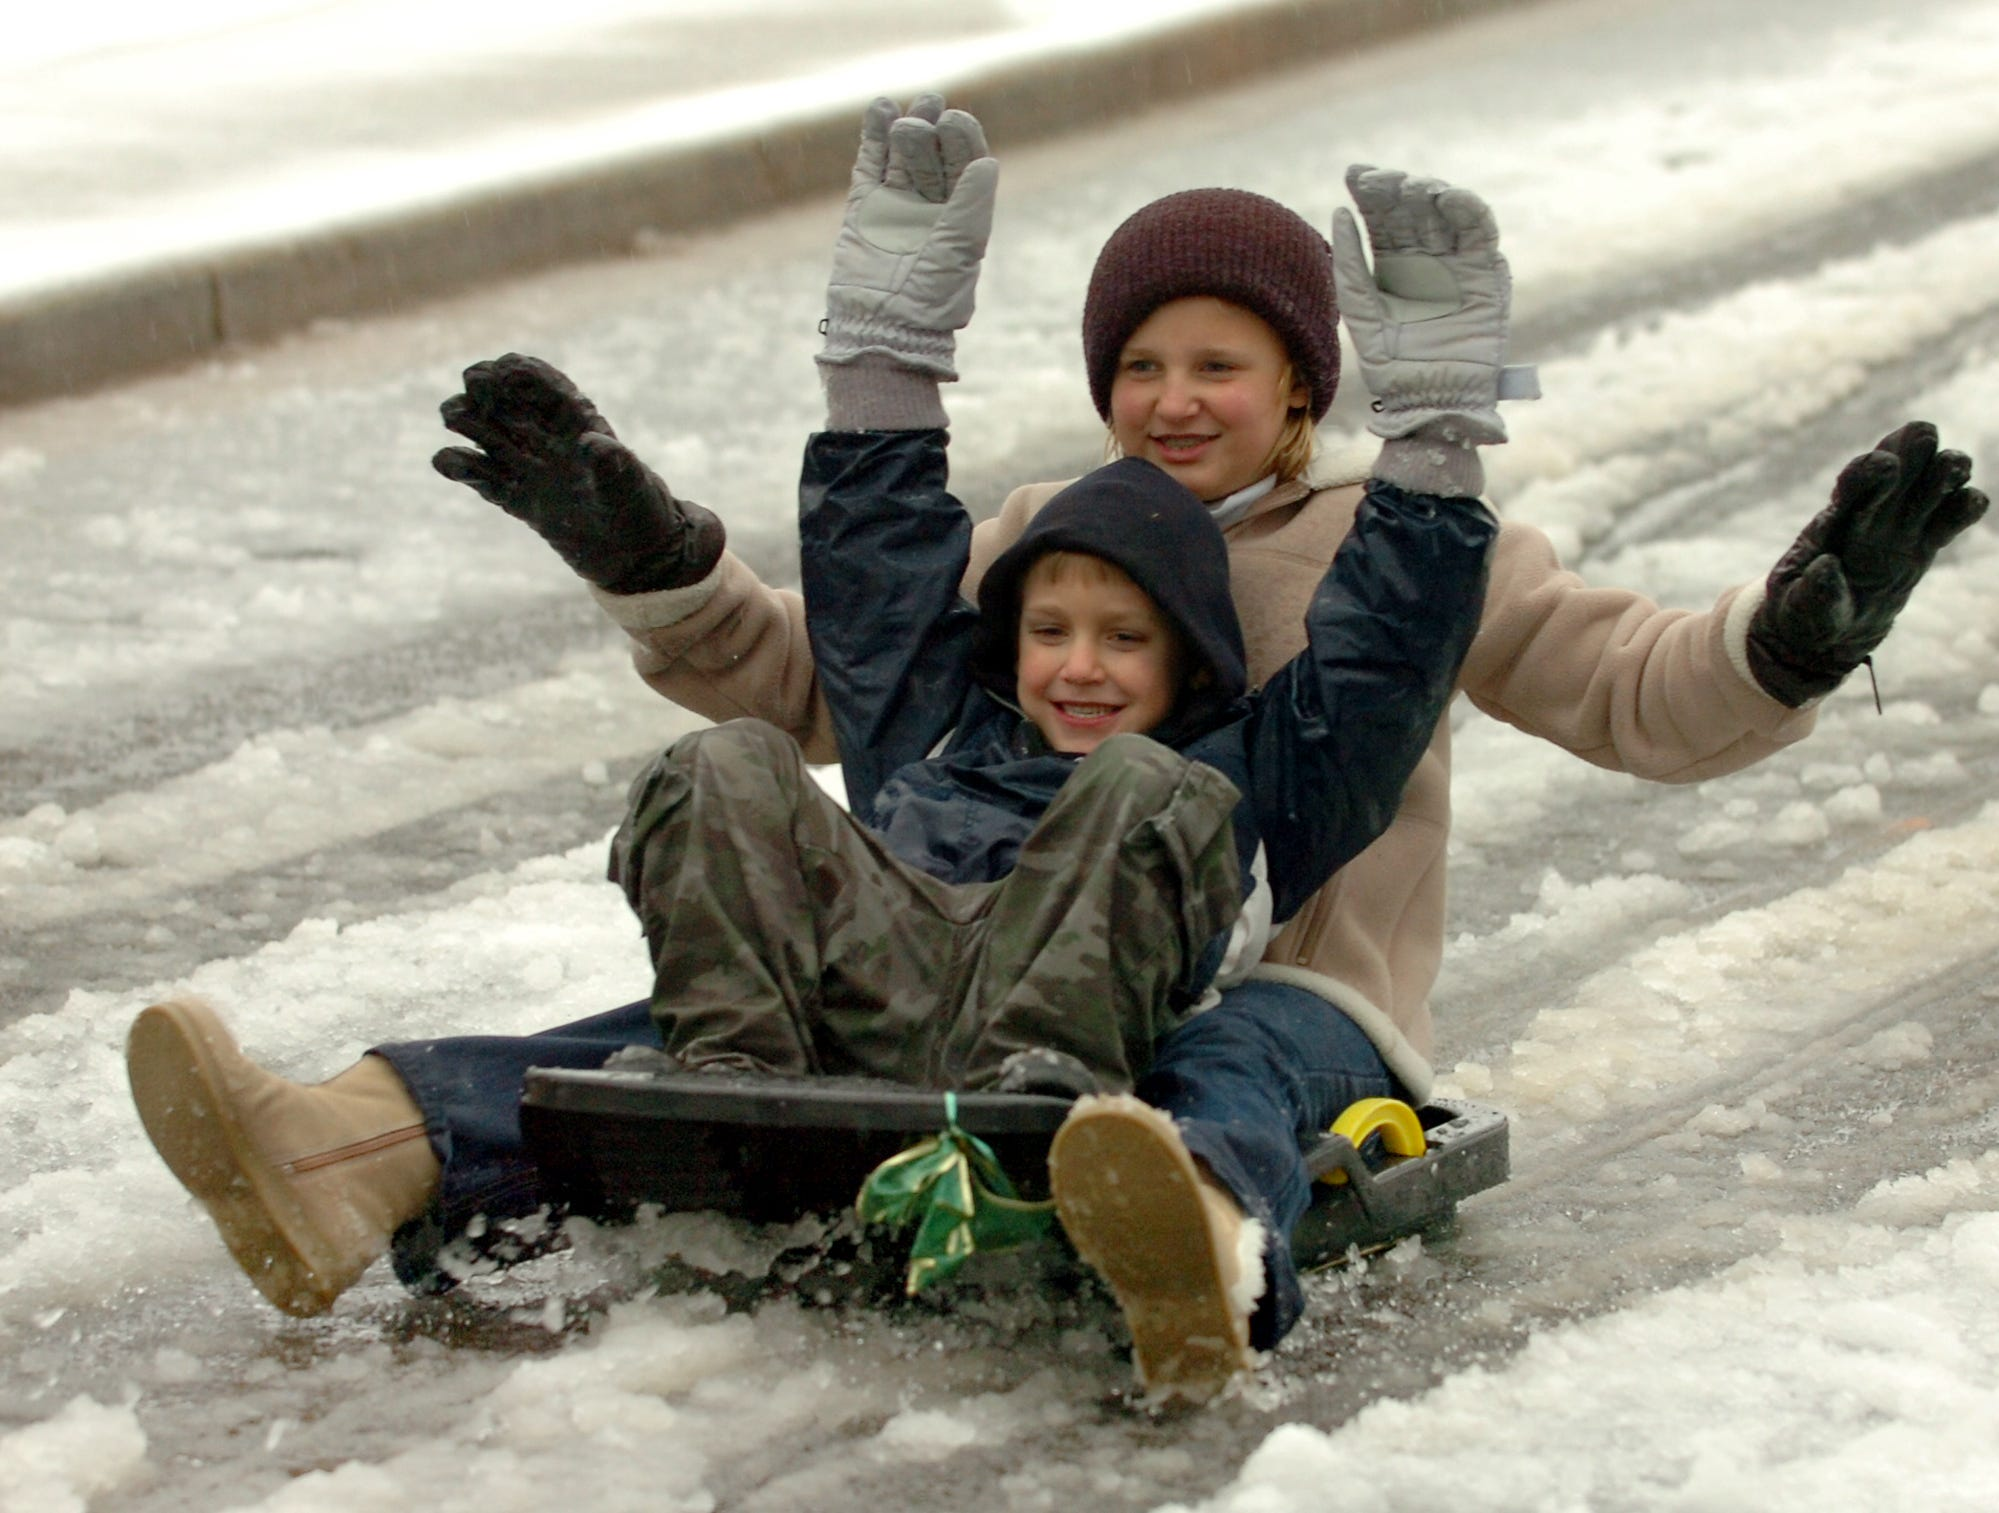 Megan Blume, 10, and her brother William, 6, enjoy sledding in Avondale Heights Thursday morning.